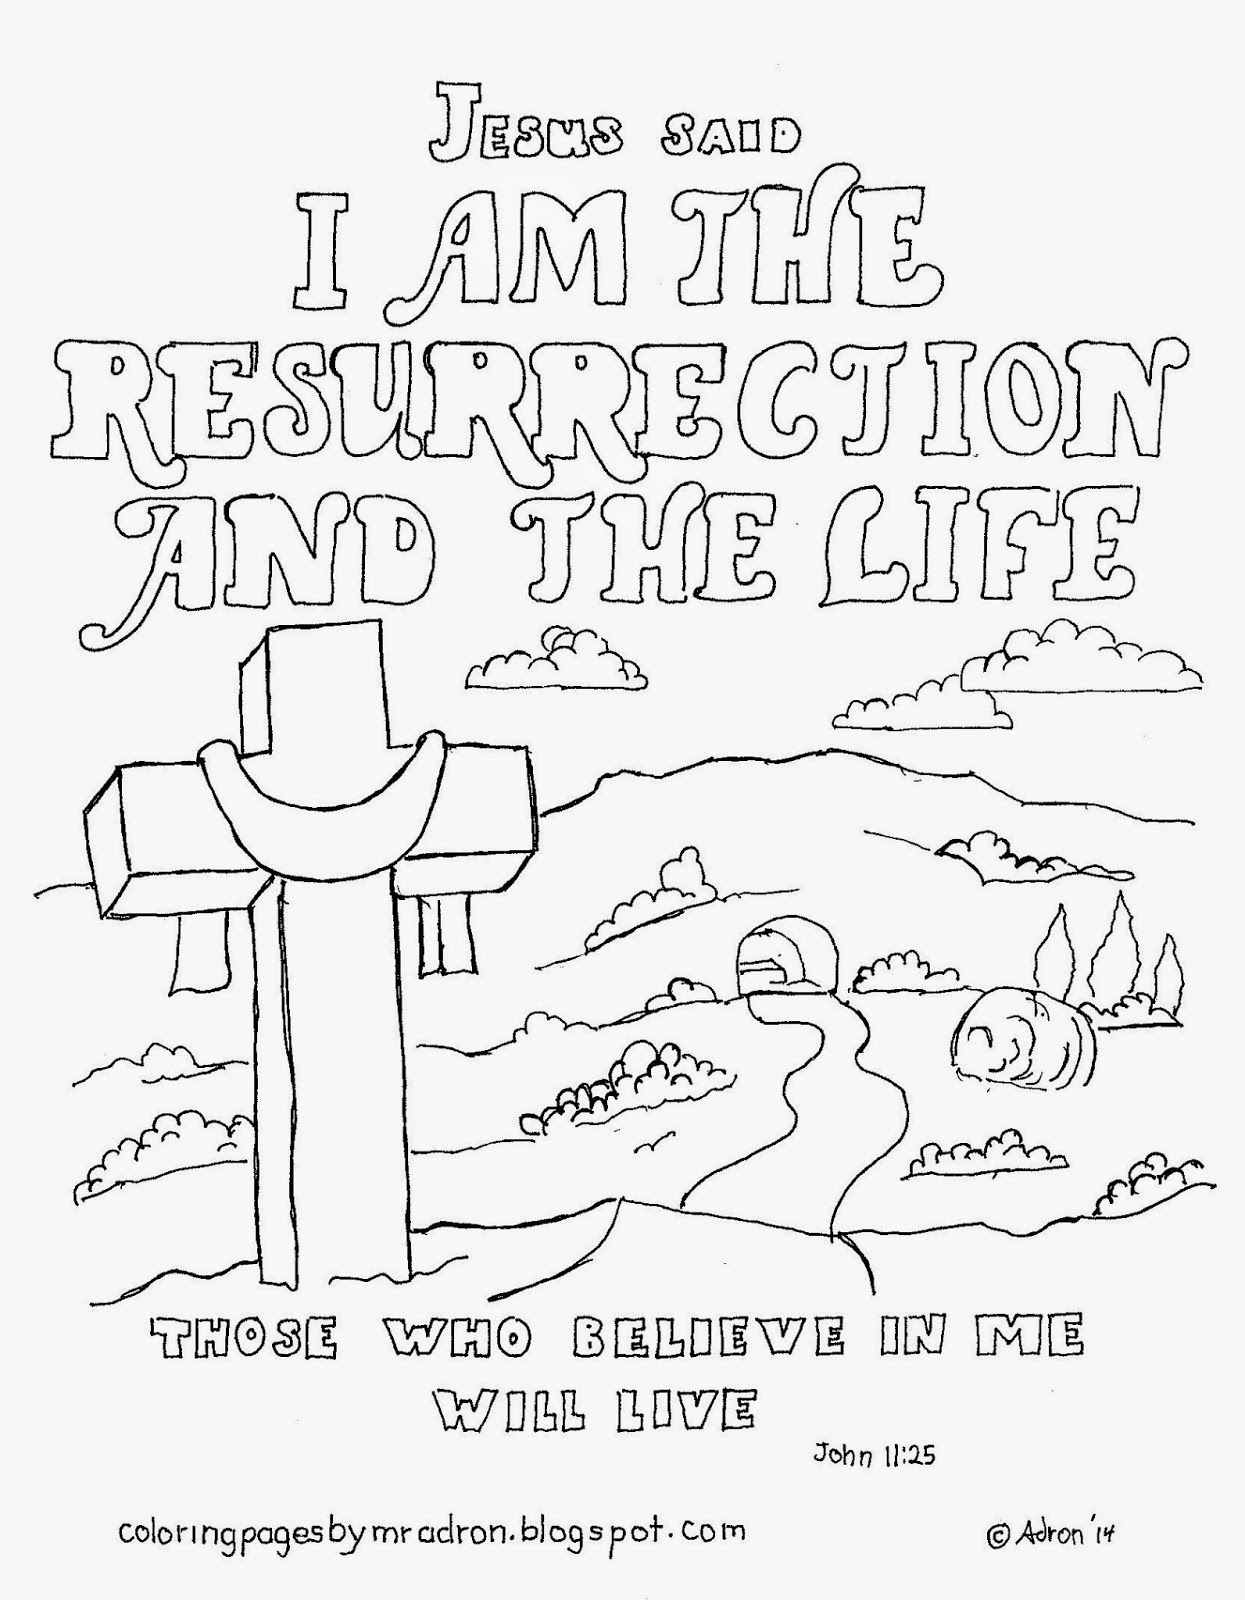 resurrection coloring pages - coloring pages for kids by mr adron i am the